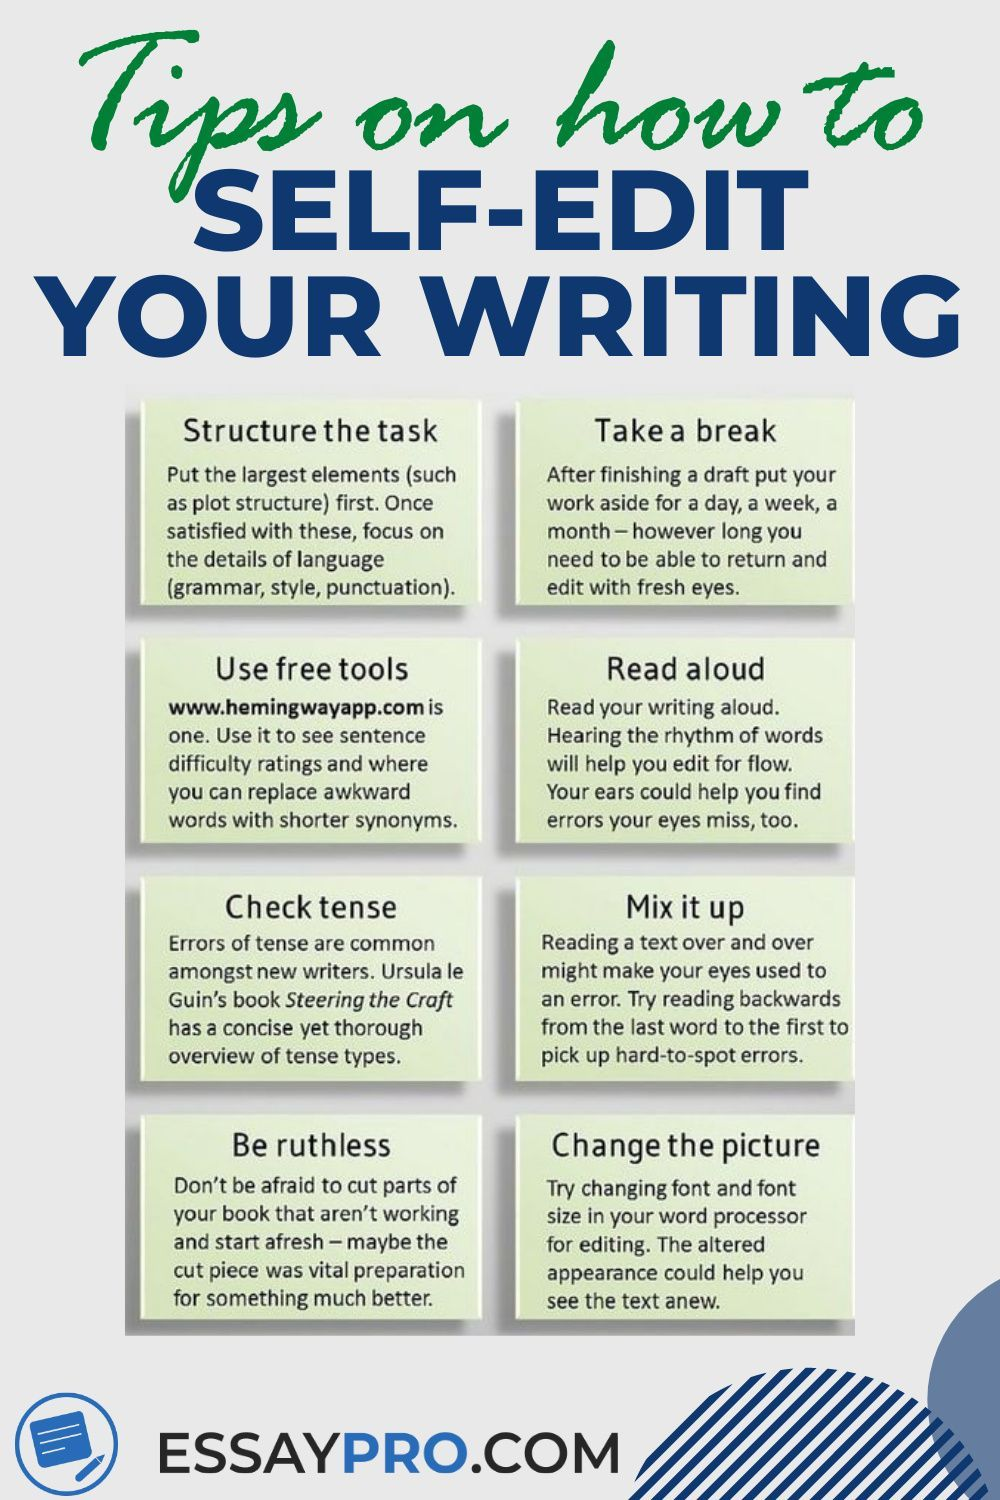 How to write an essay tips and tricks writing essay prompts